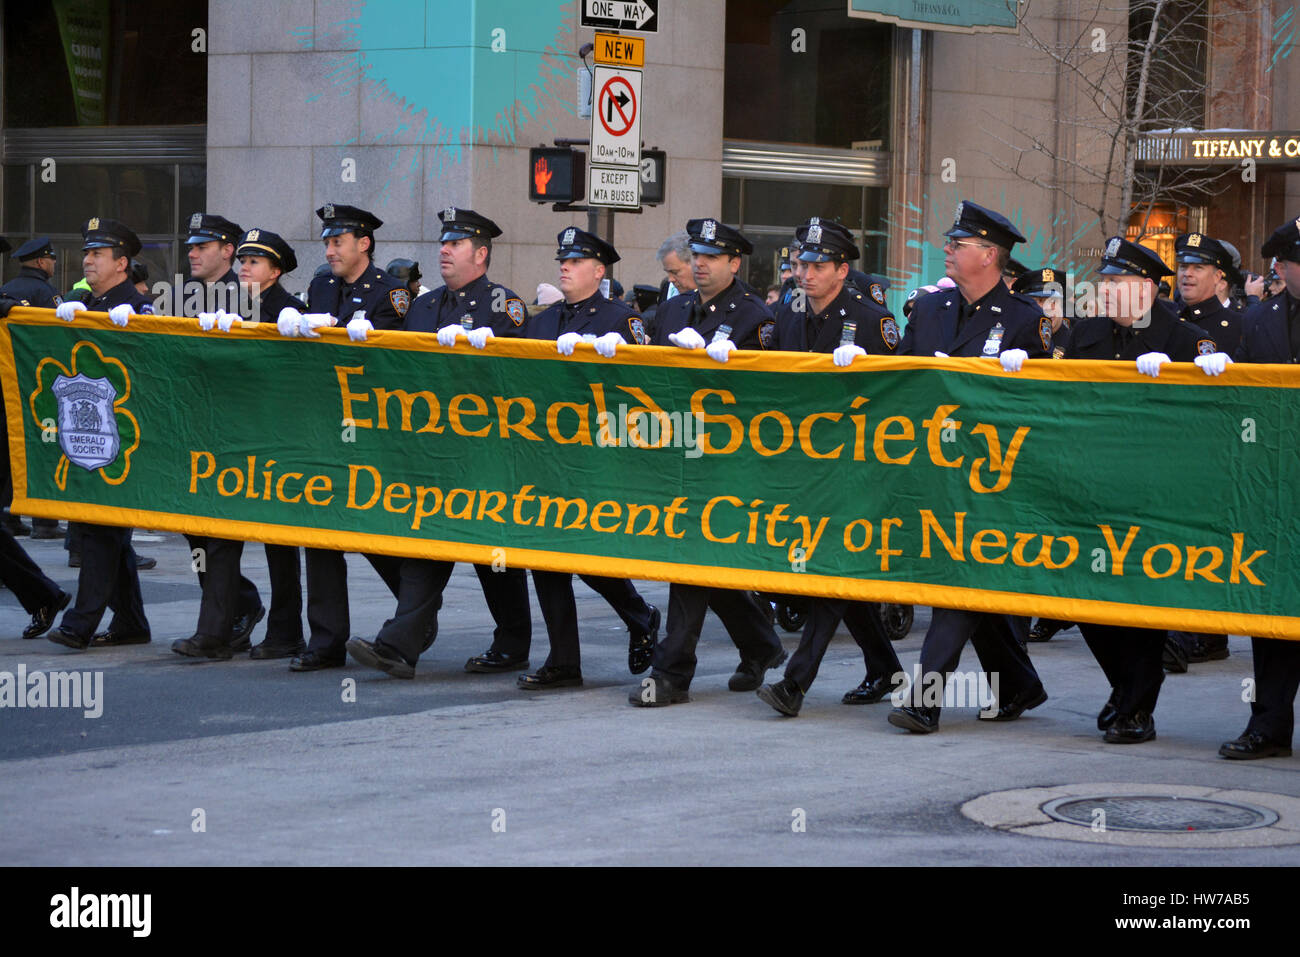 a551a2f3 Members of the NYPD Emerald Society marching in the St. Patrick's Day  Parade in Manhattan